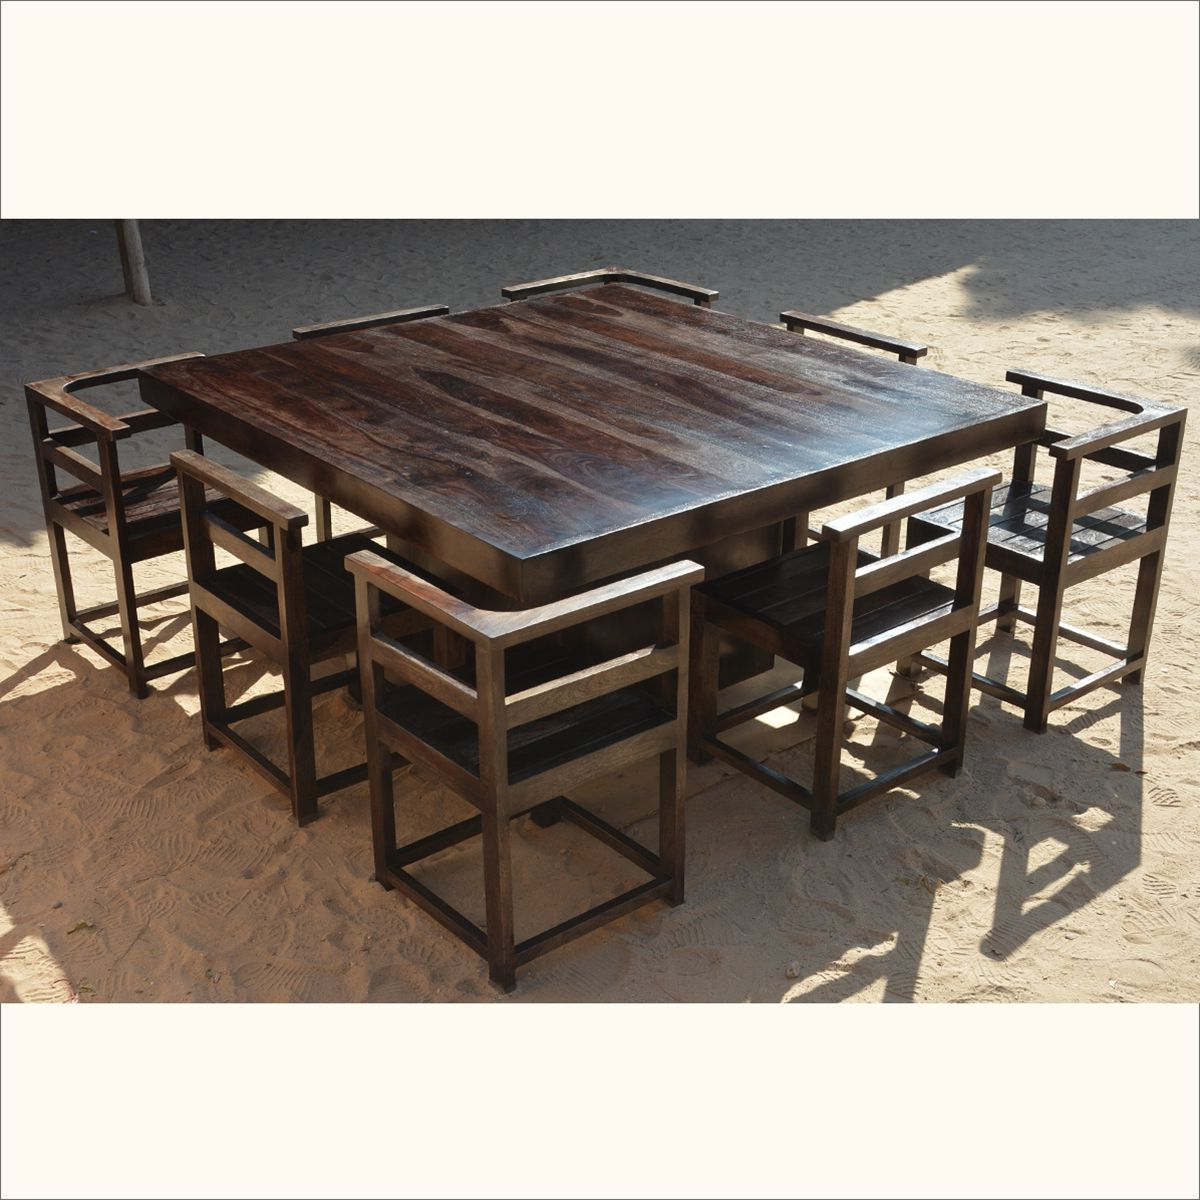 Popular Bistro Transitional 4 Seating Square Dining Tables With Regard To Square Dining Table For 8 In (View 5 of 24)